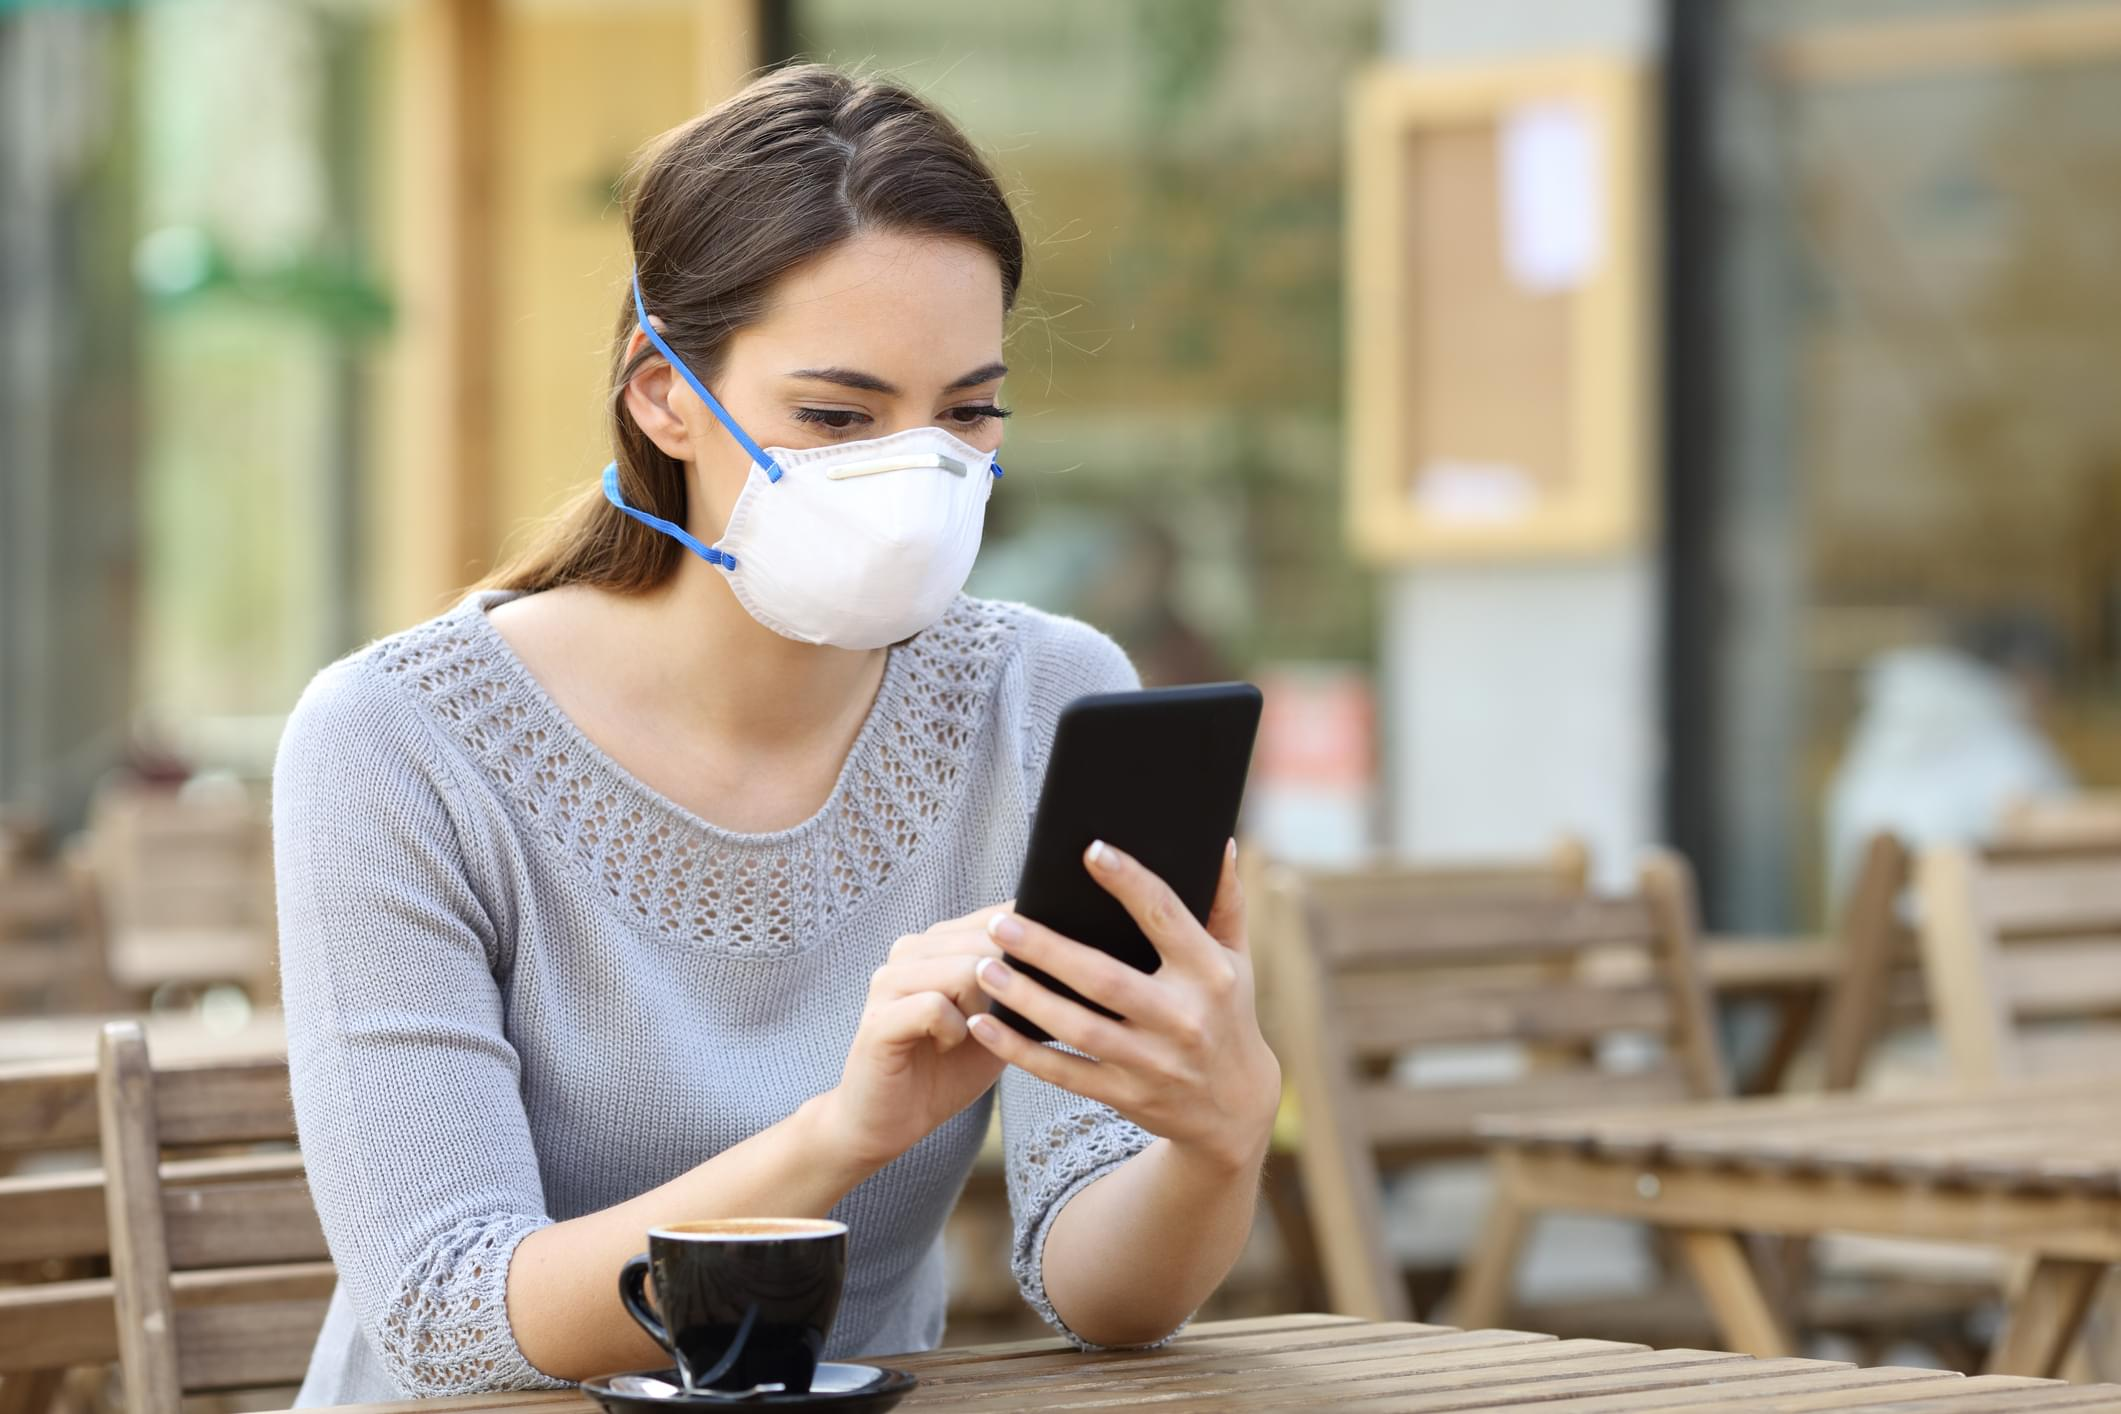 Woman with mask checking news on phone